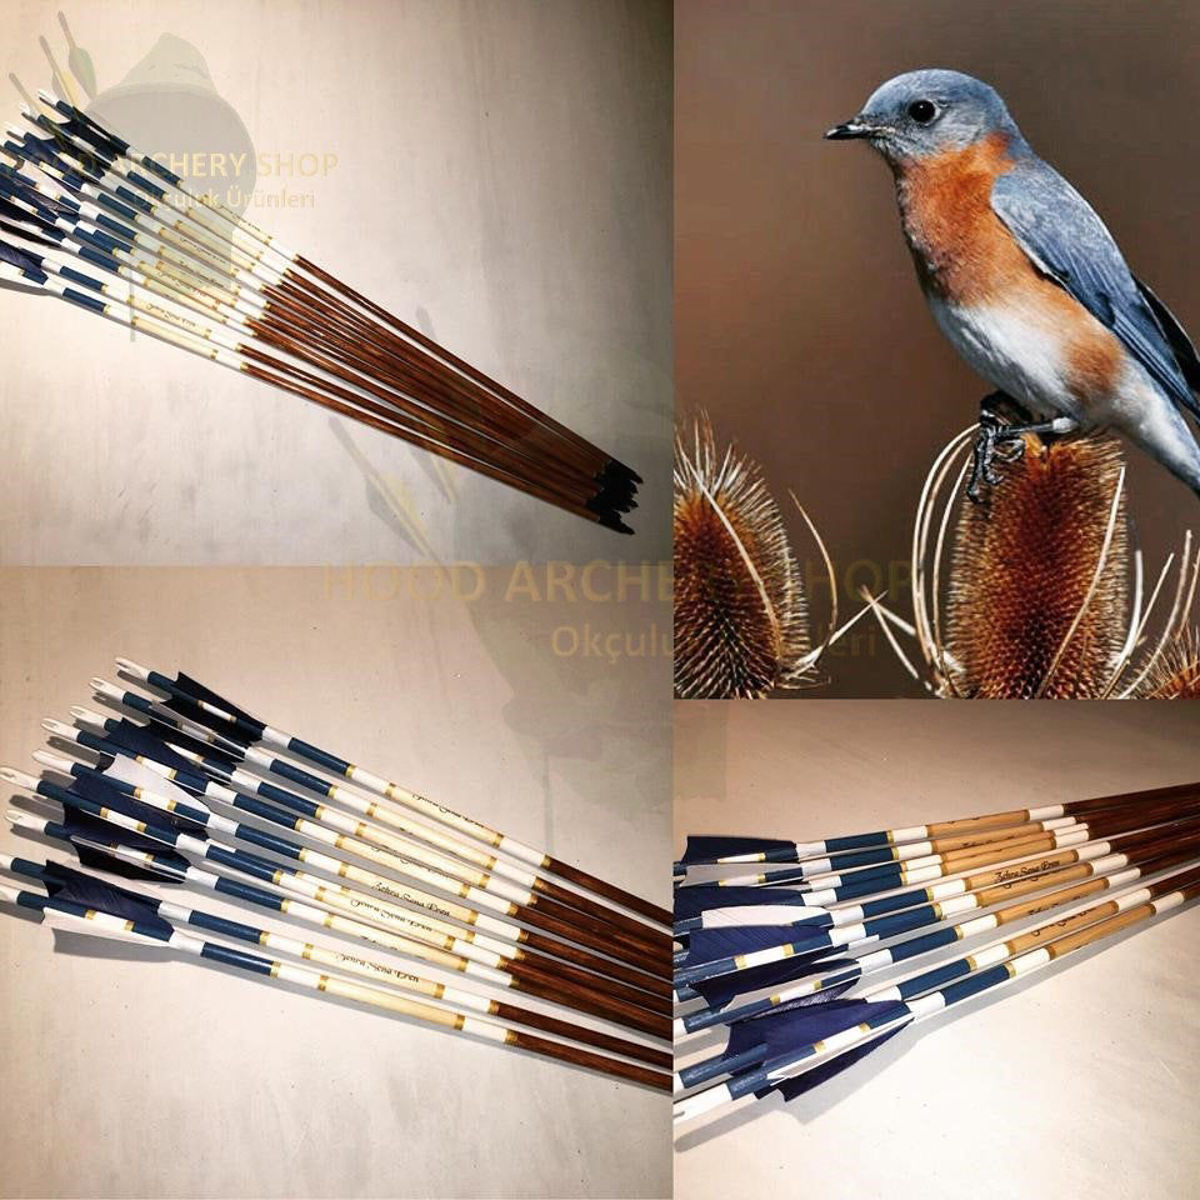 Picture of Wooden Archery Arrow For Recurve Longbow Bow Shoot with Blue White Turkey Feather Medieval Traditional Ottoman Hunting Archery